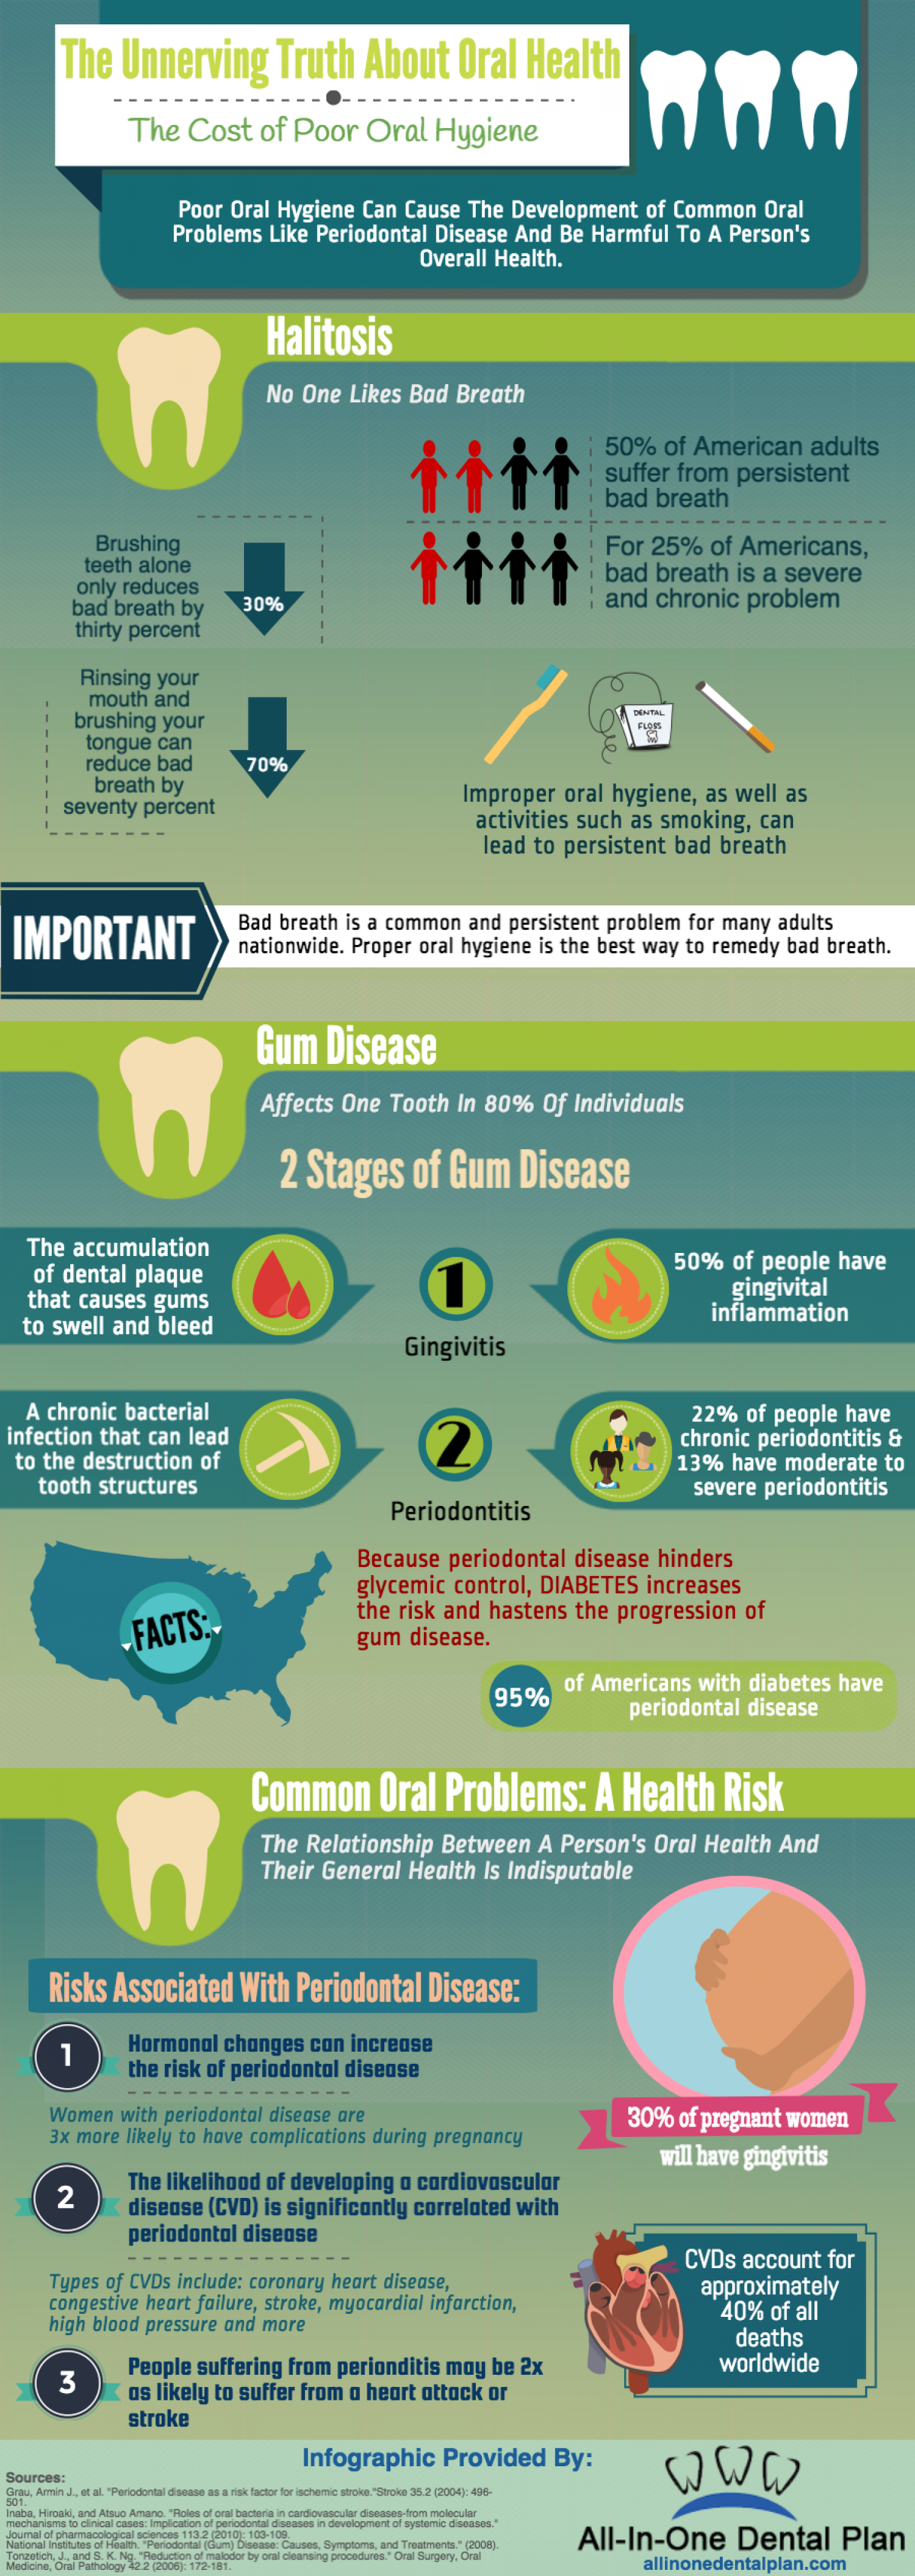 The Unnerving Truth About Oral Health Infographic